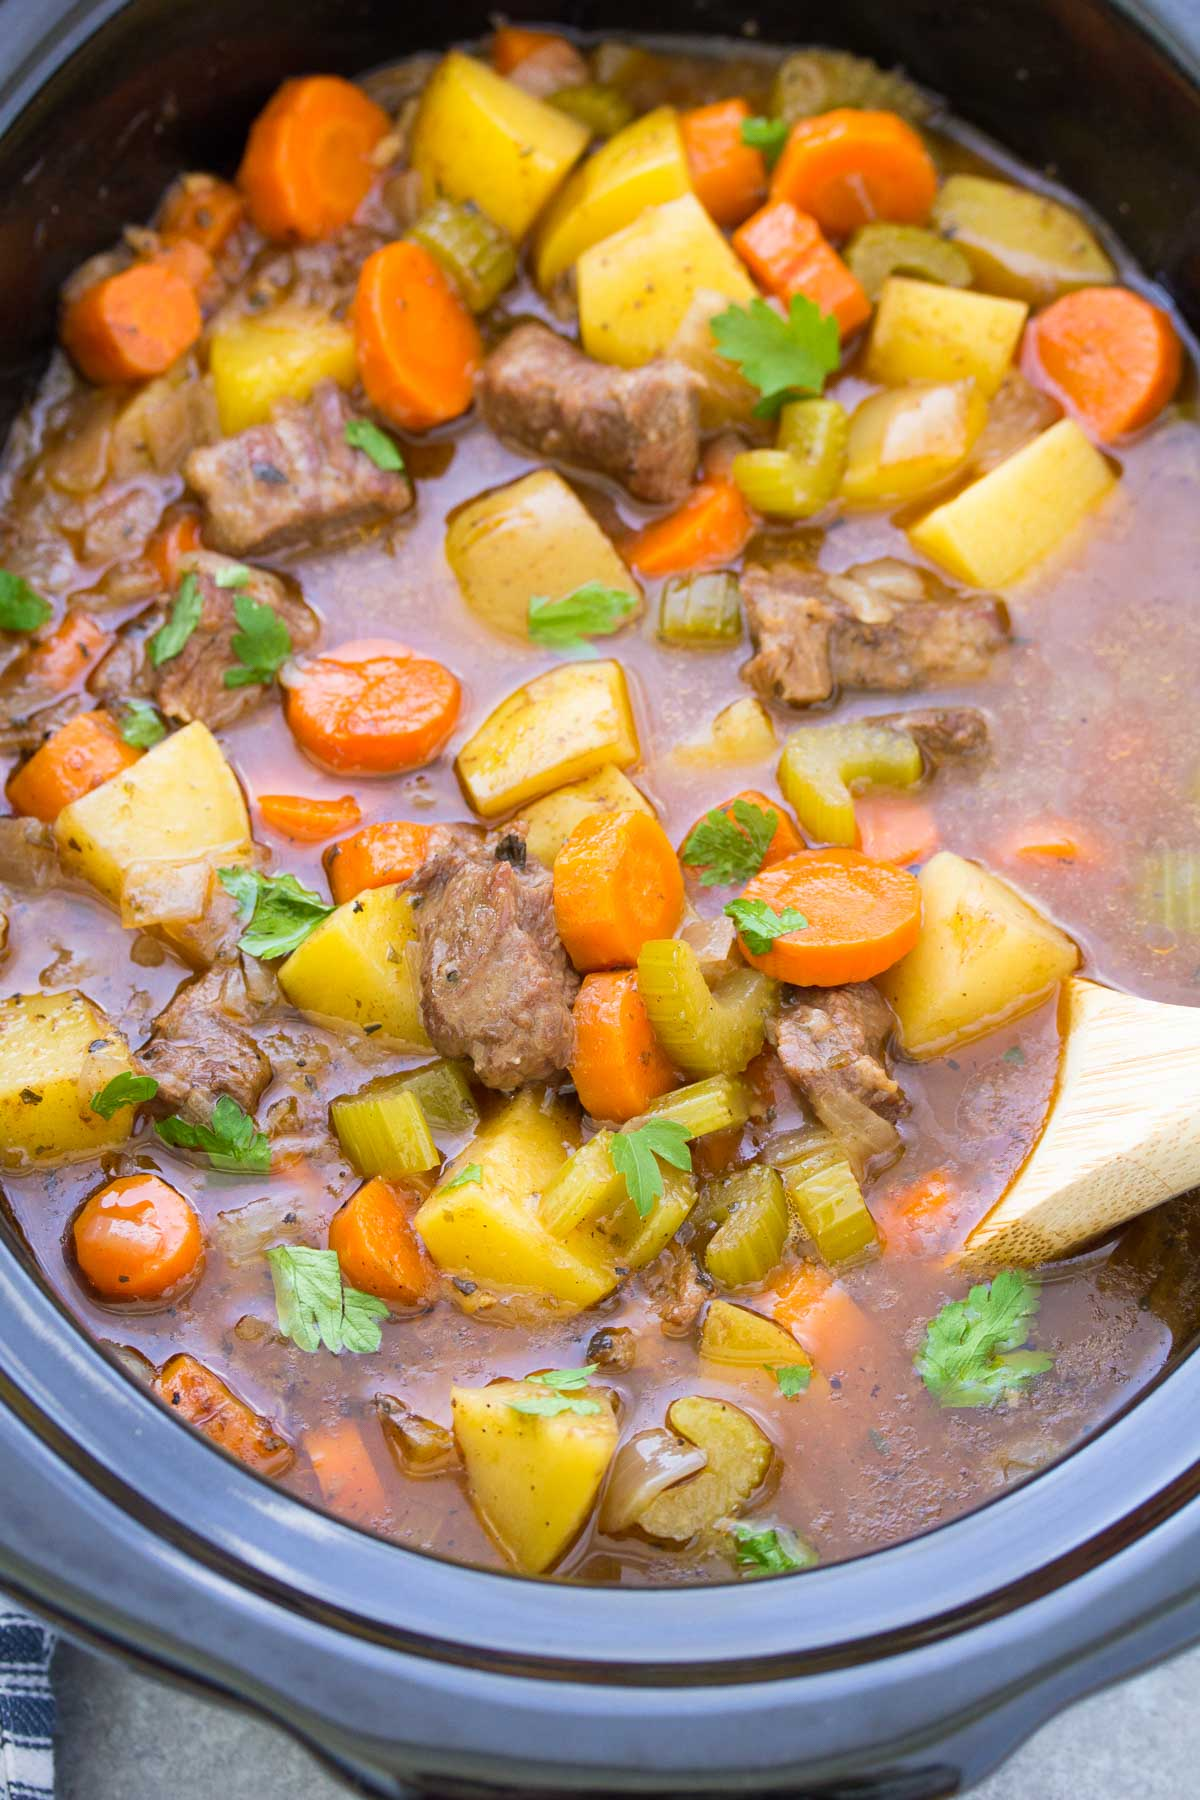 beef stew with potatoes and carrots in a slow cooker